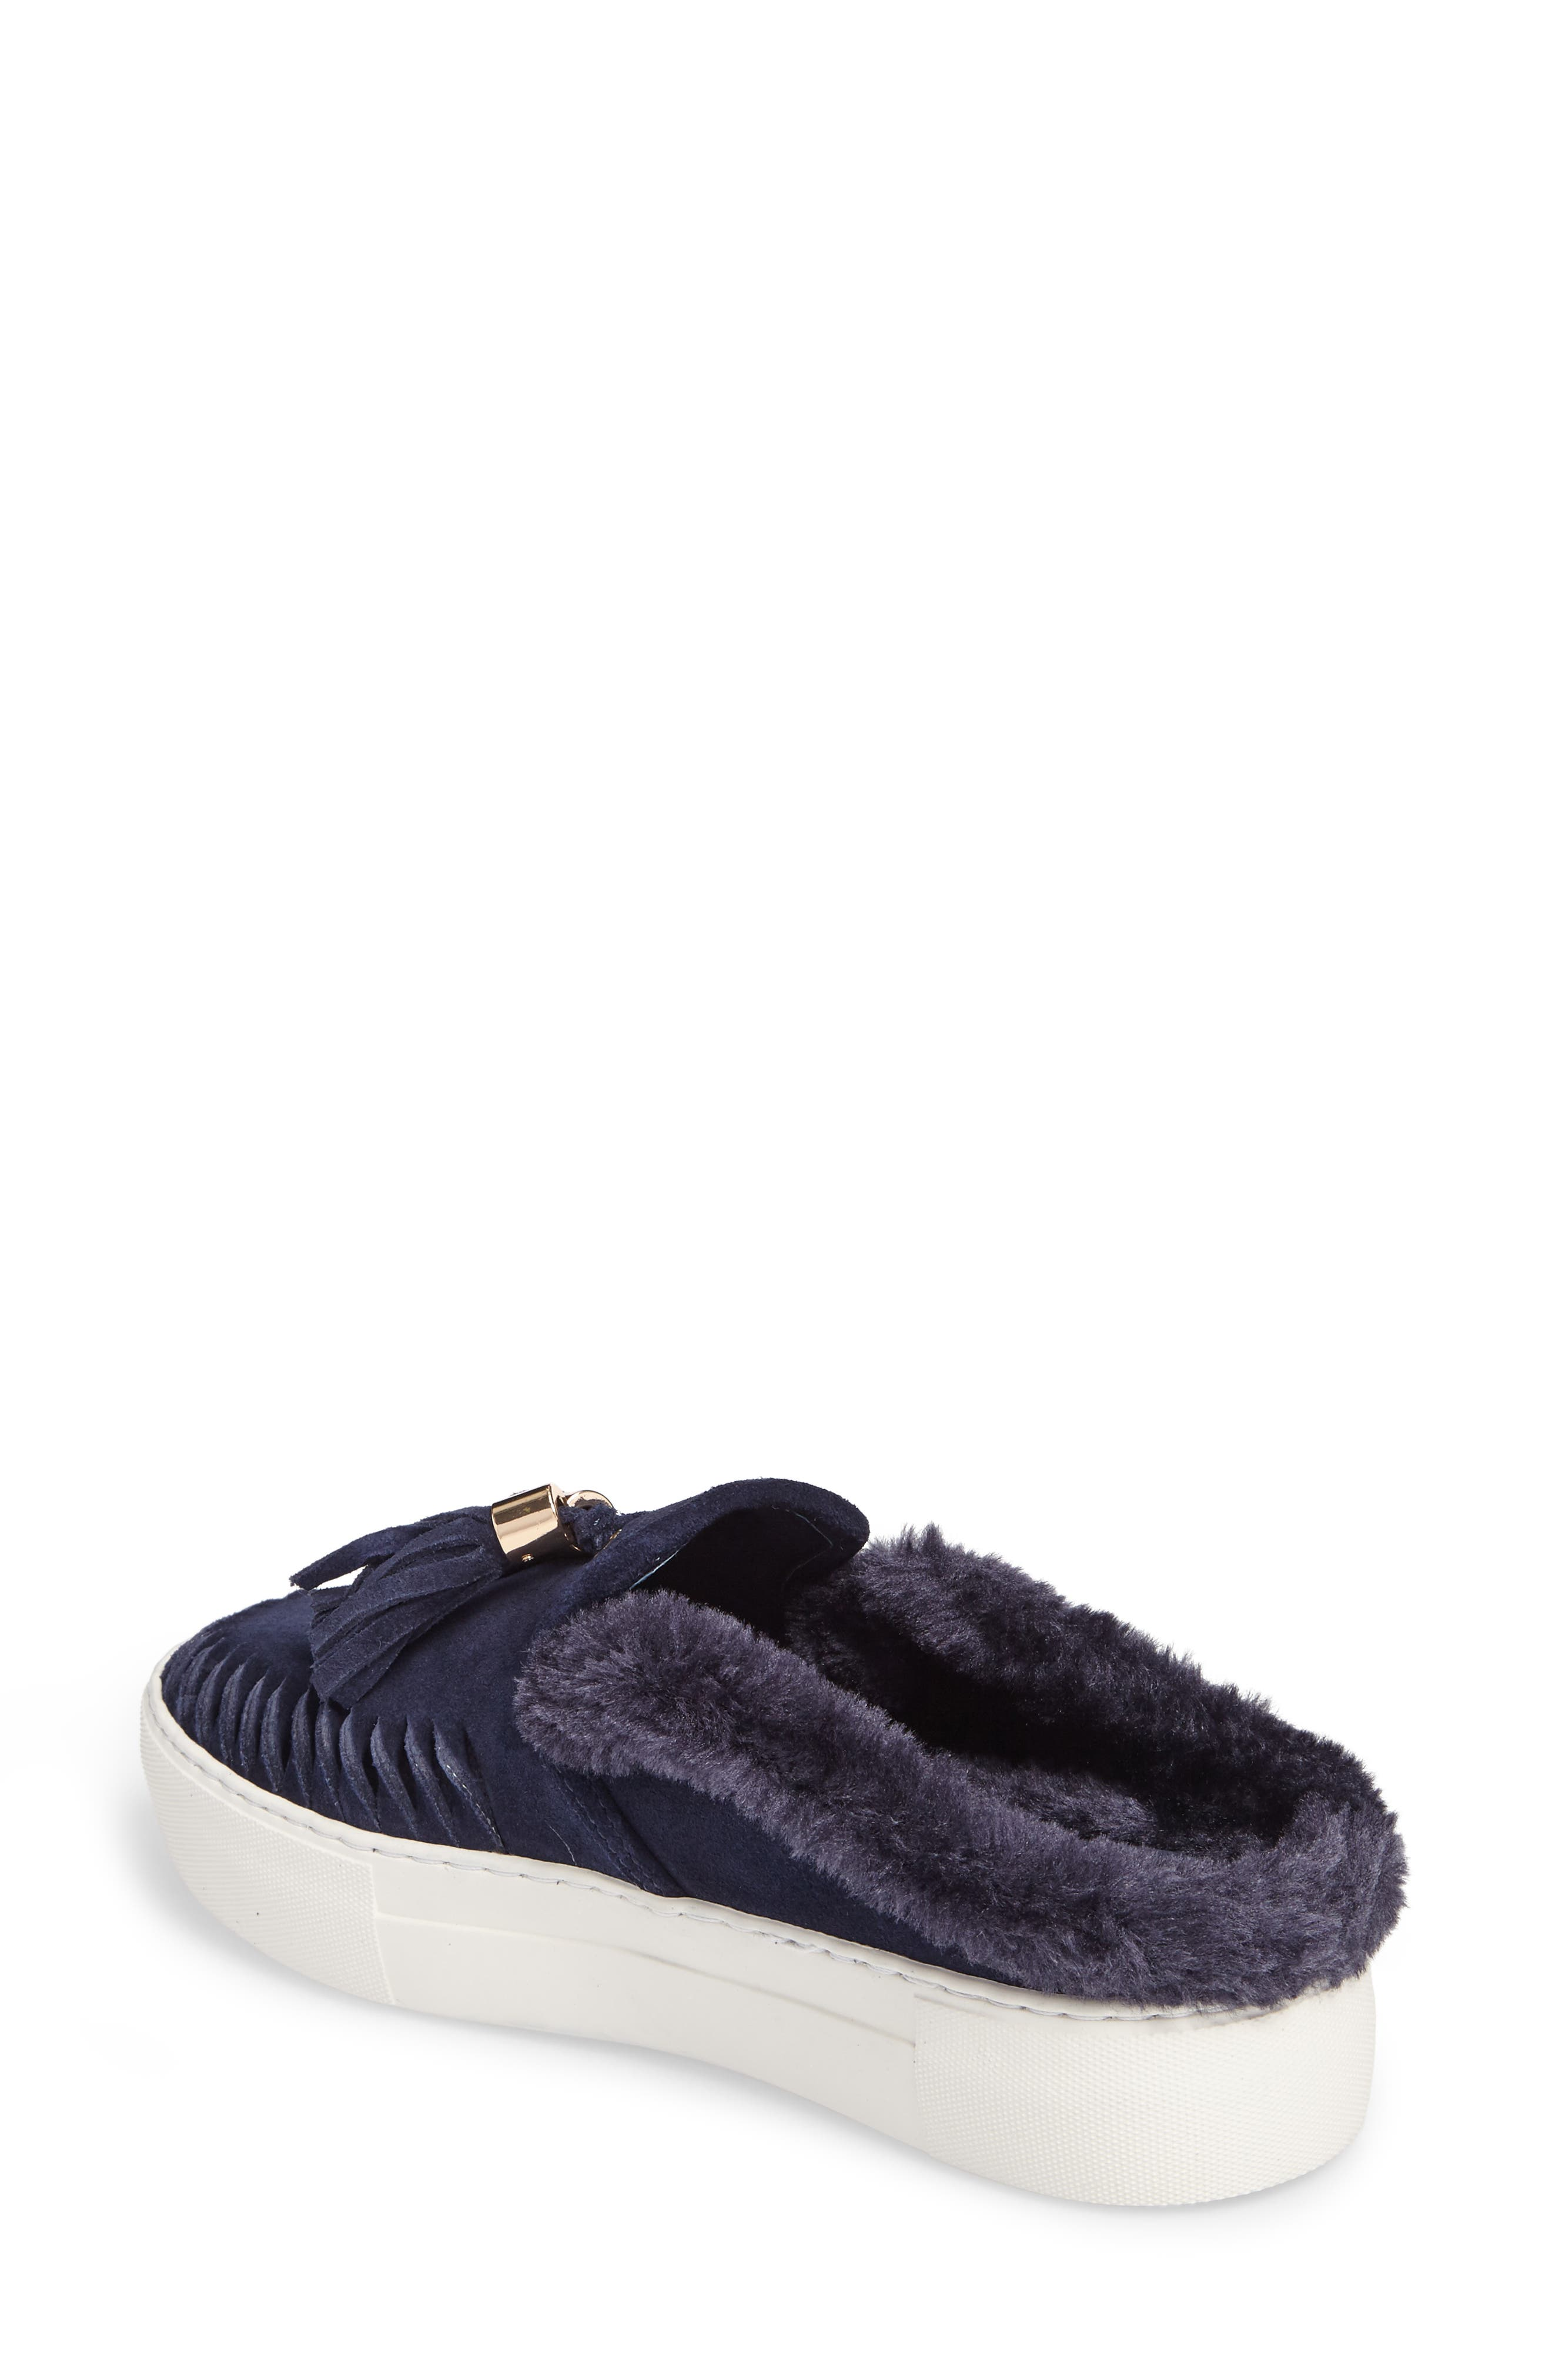 Alternate Image 2  - JSlides Azul Tassel Slip-On Sneaker (Women)